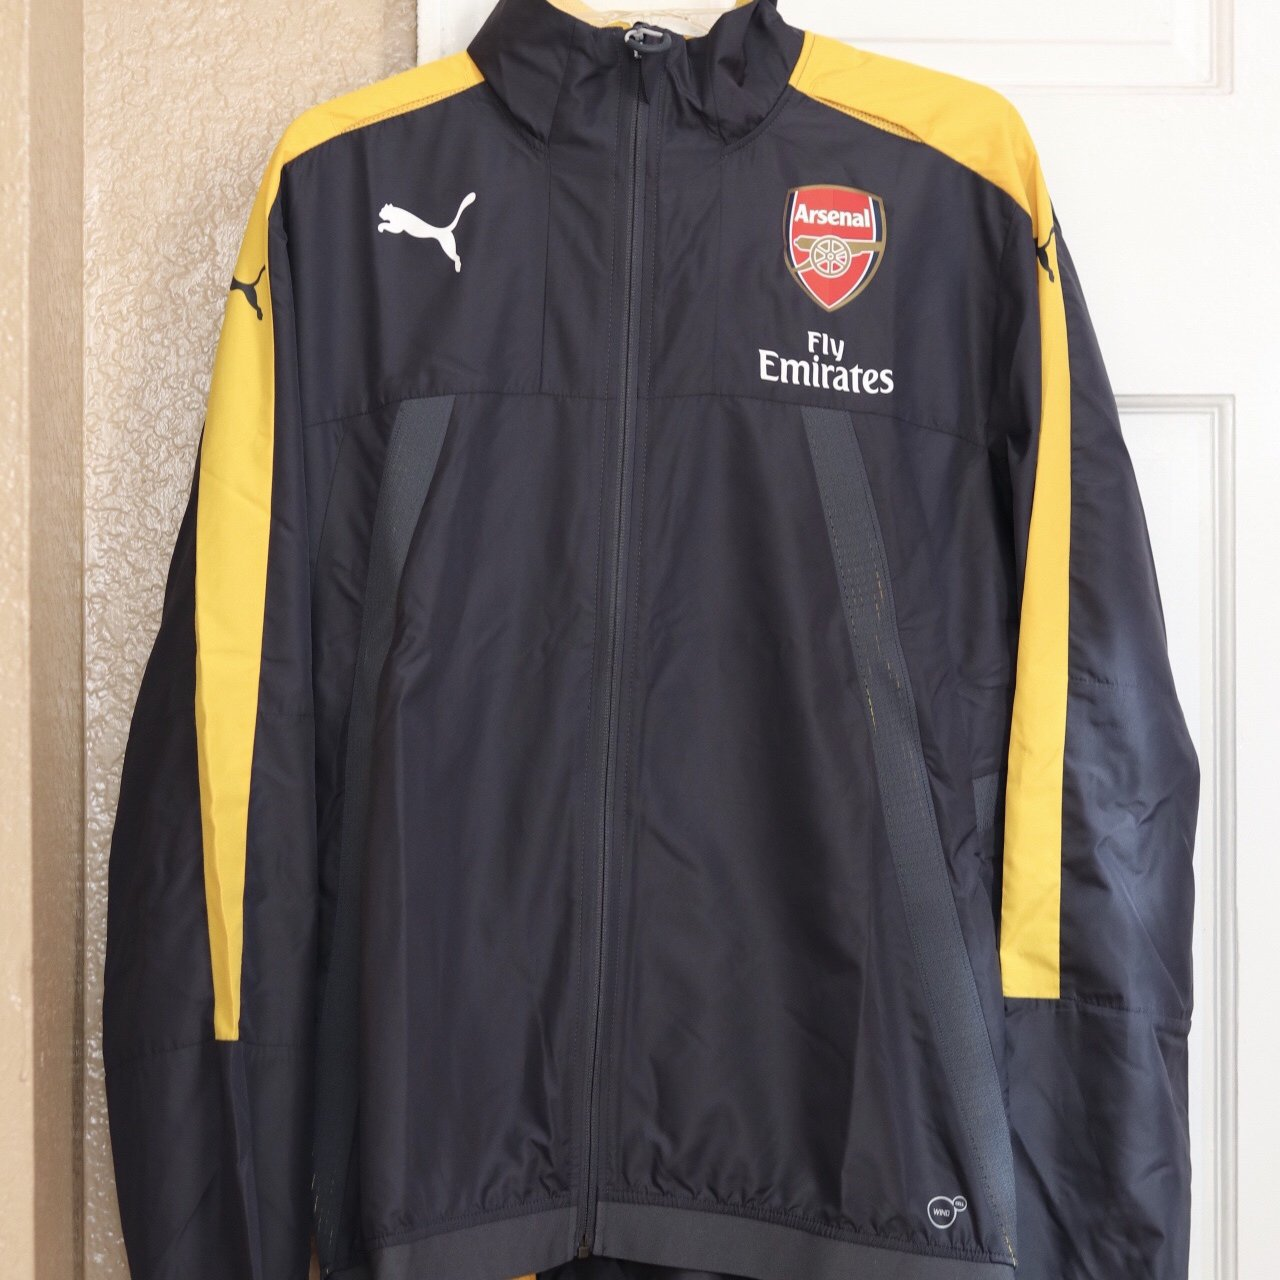 09c09bbad28e Super dope Arsenal Puma Training Stadium Vent Jacket - gray - Depop